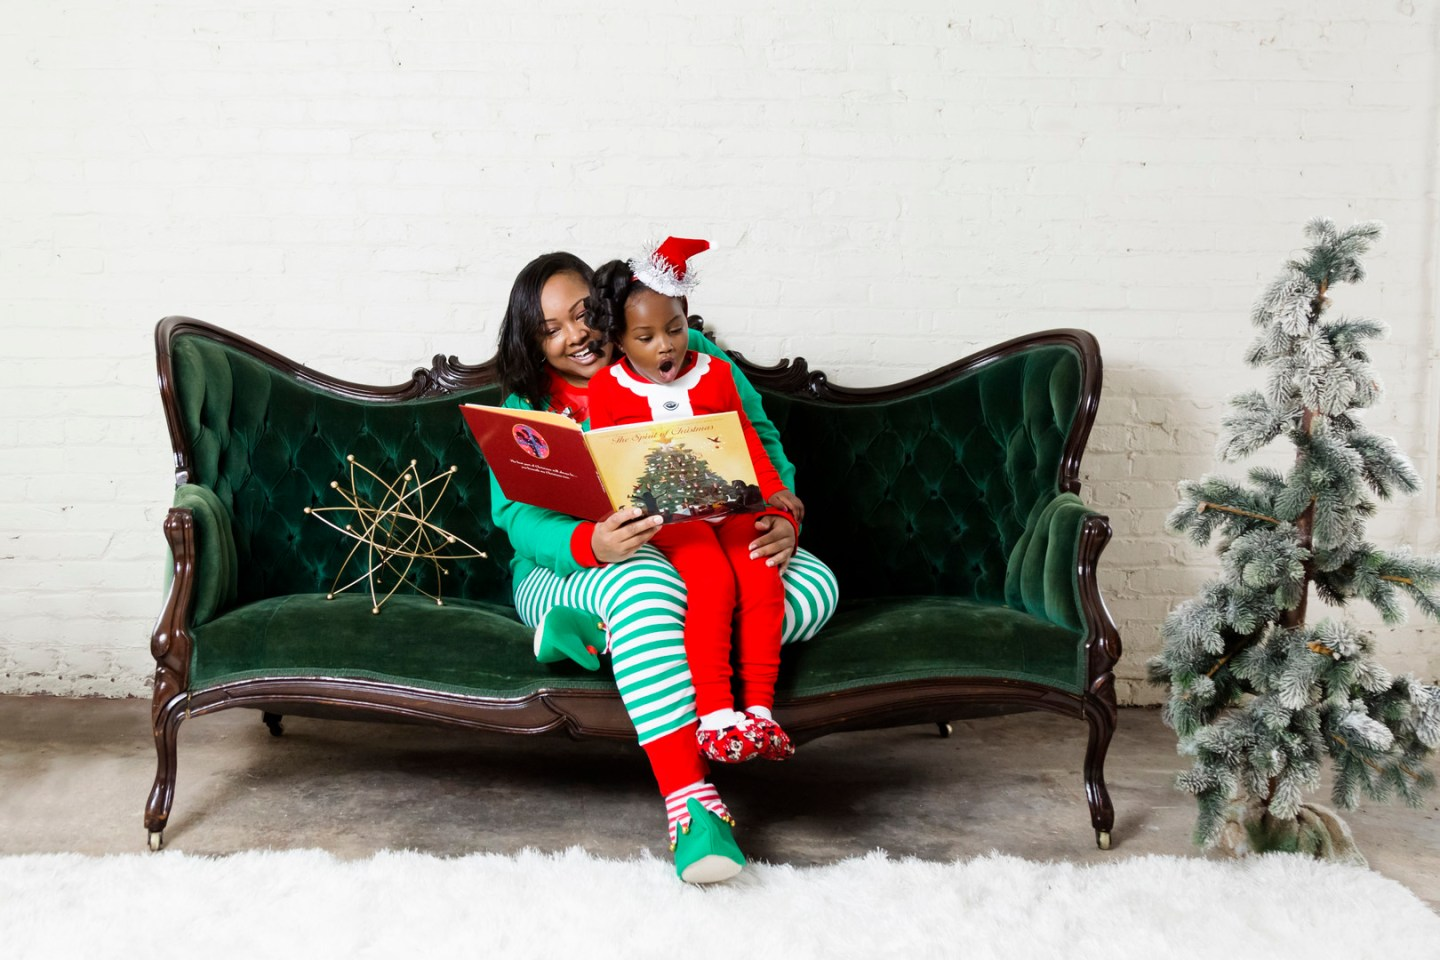 6oigt2pb6nj75yhpvt17_big Mommy & Me Christmas PJ Session in Greensboro, NC